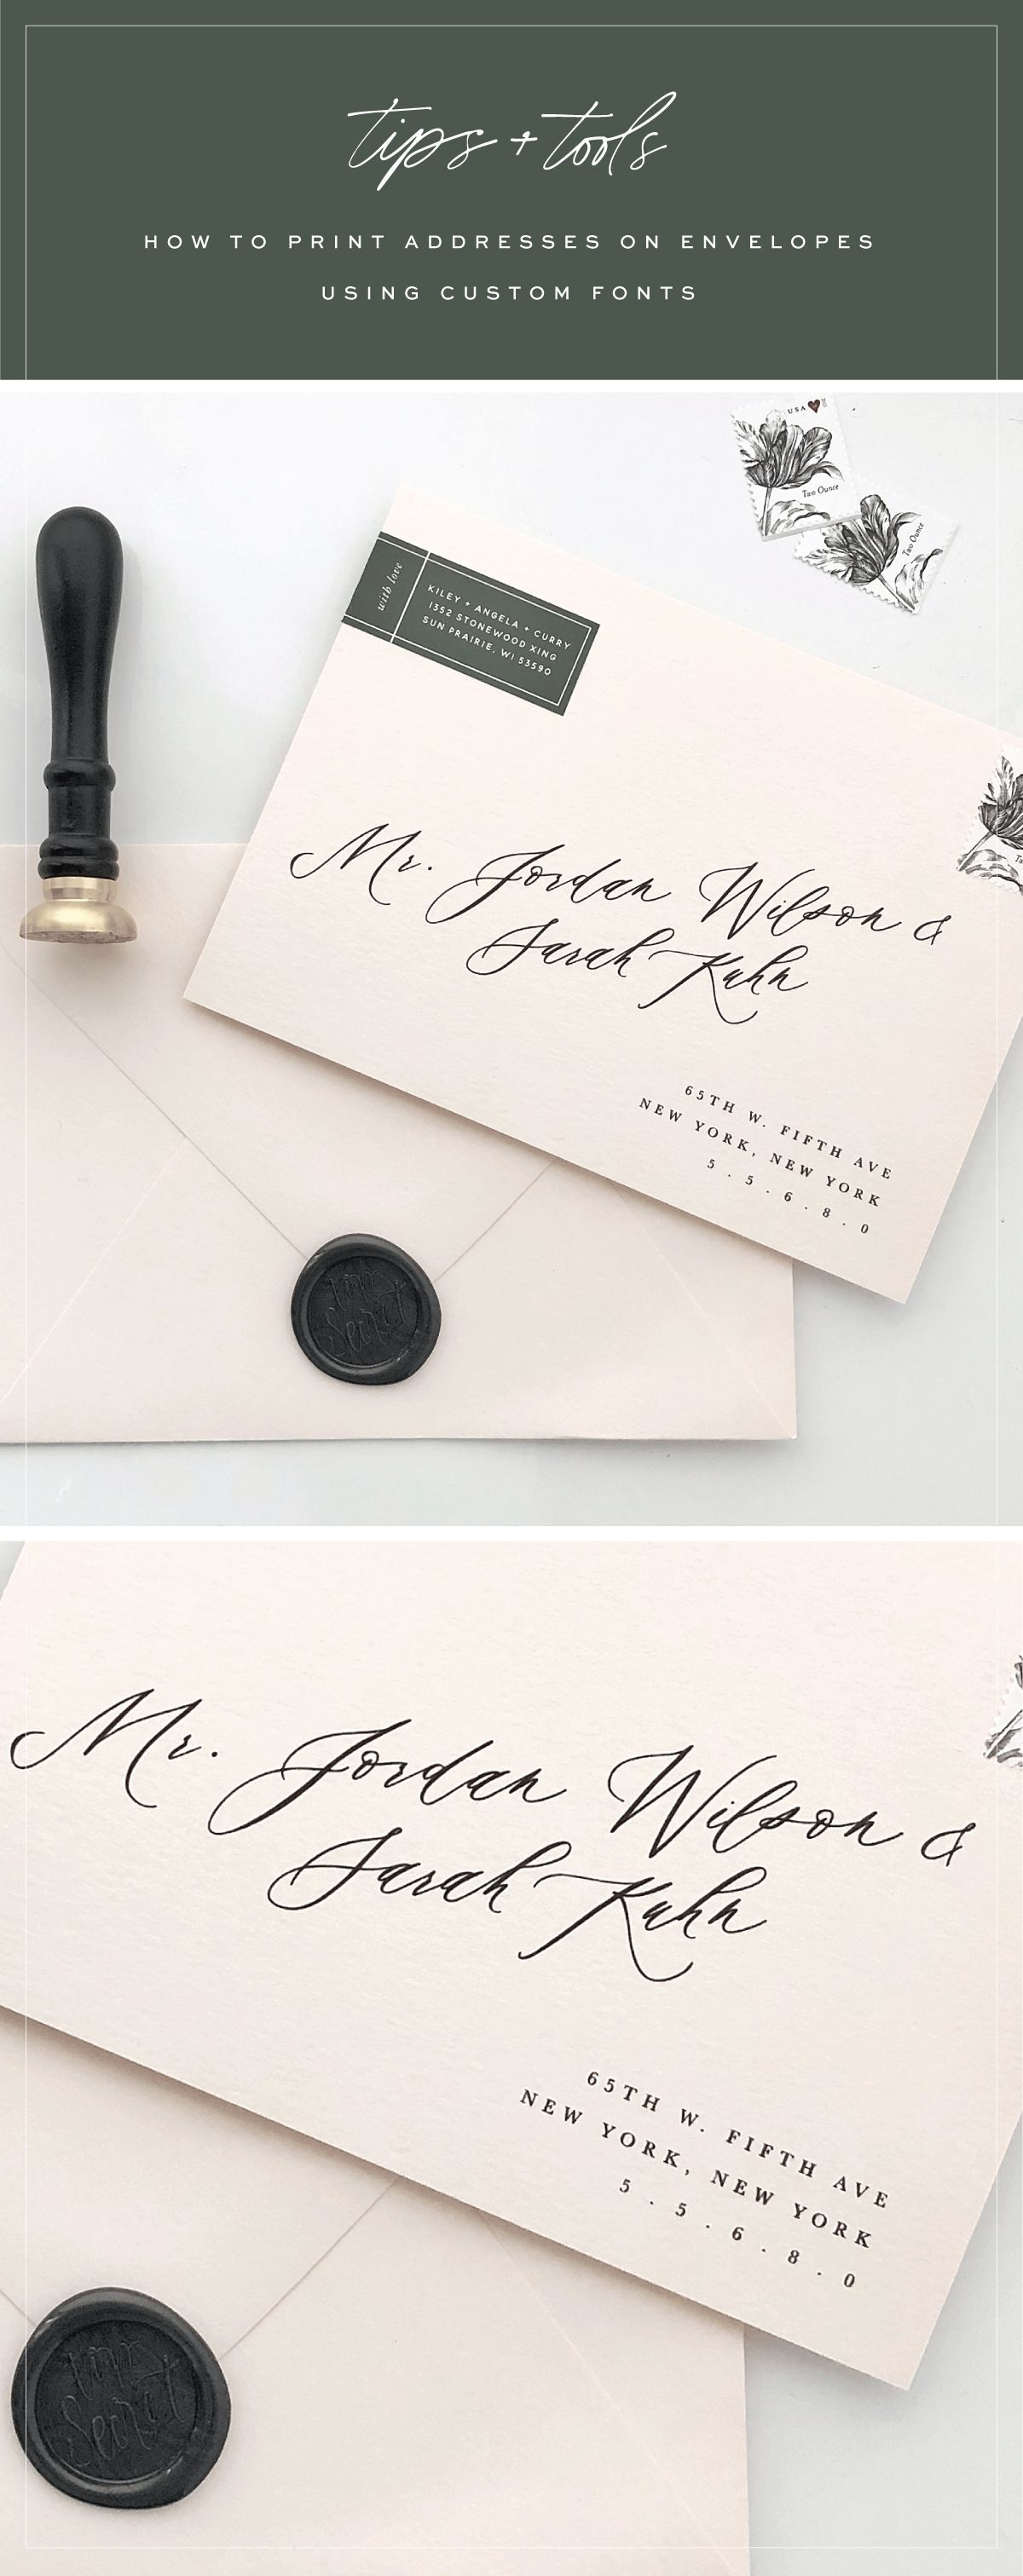 how to address wedding invites%0A Tutorial   How to print addresses on envelopes using custom fonts   Saffron  Avenue